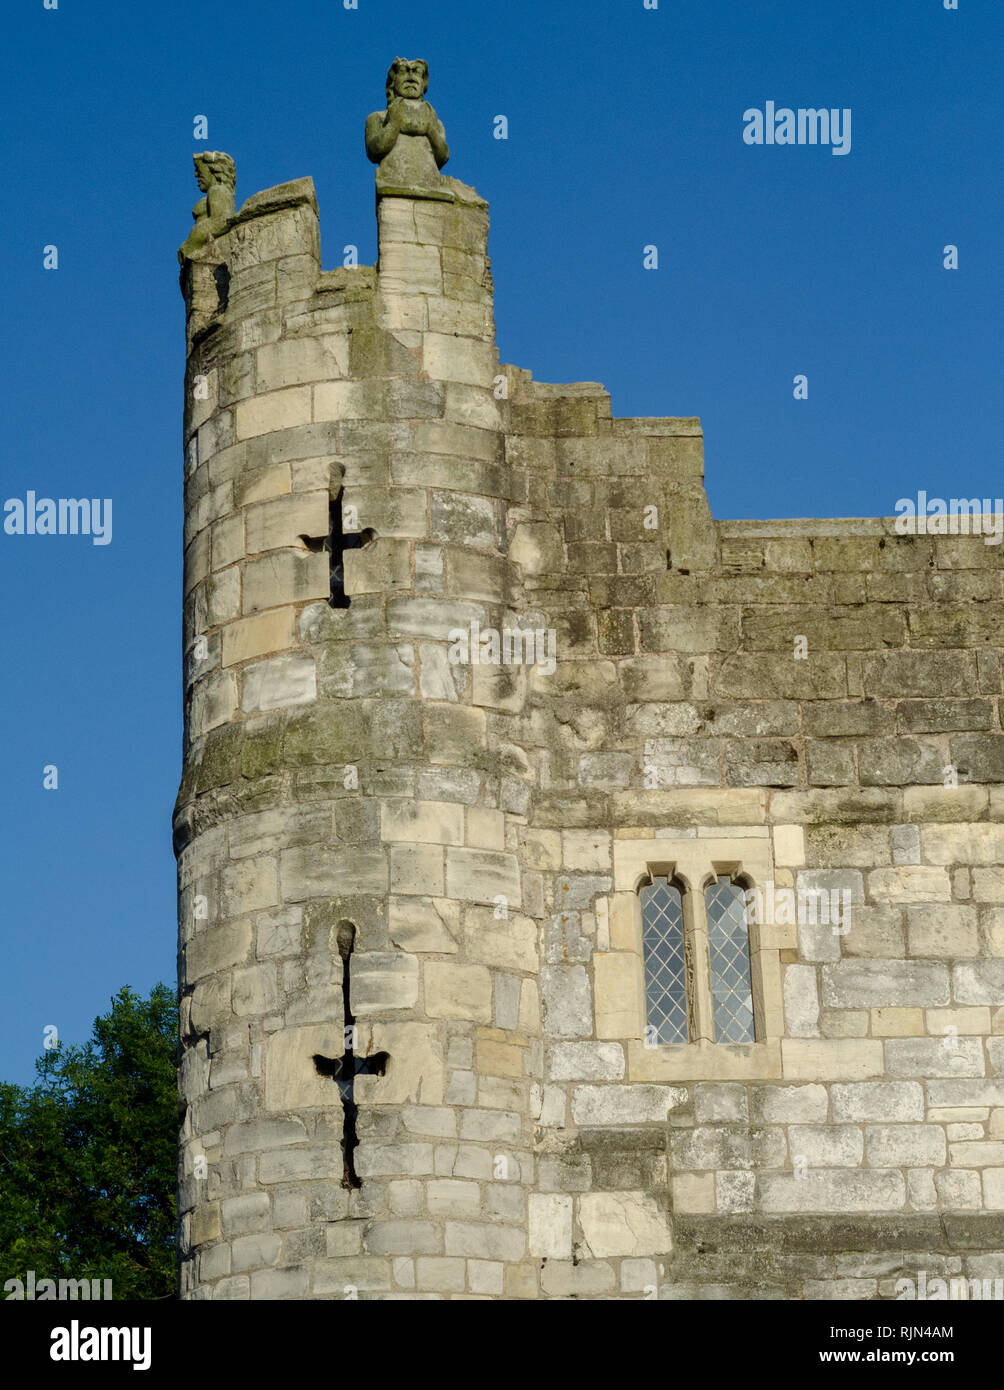 A gatehouse in the walled fortifications in York, England. Arrowslits are visible which provided defense against intruders. - Stock Image